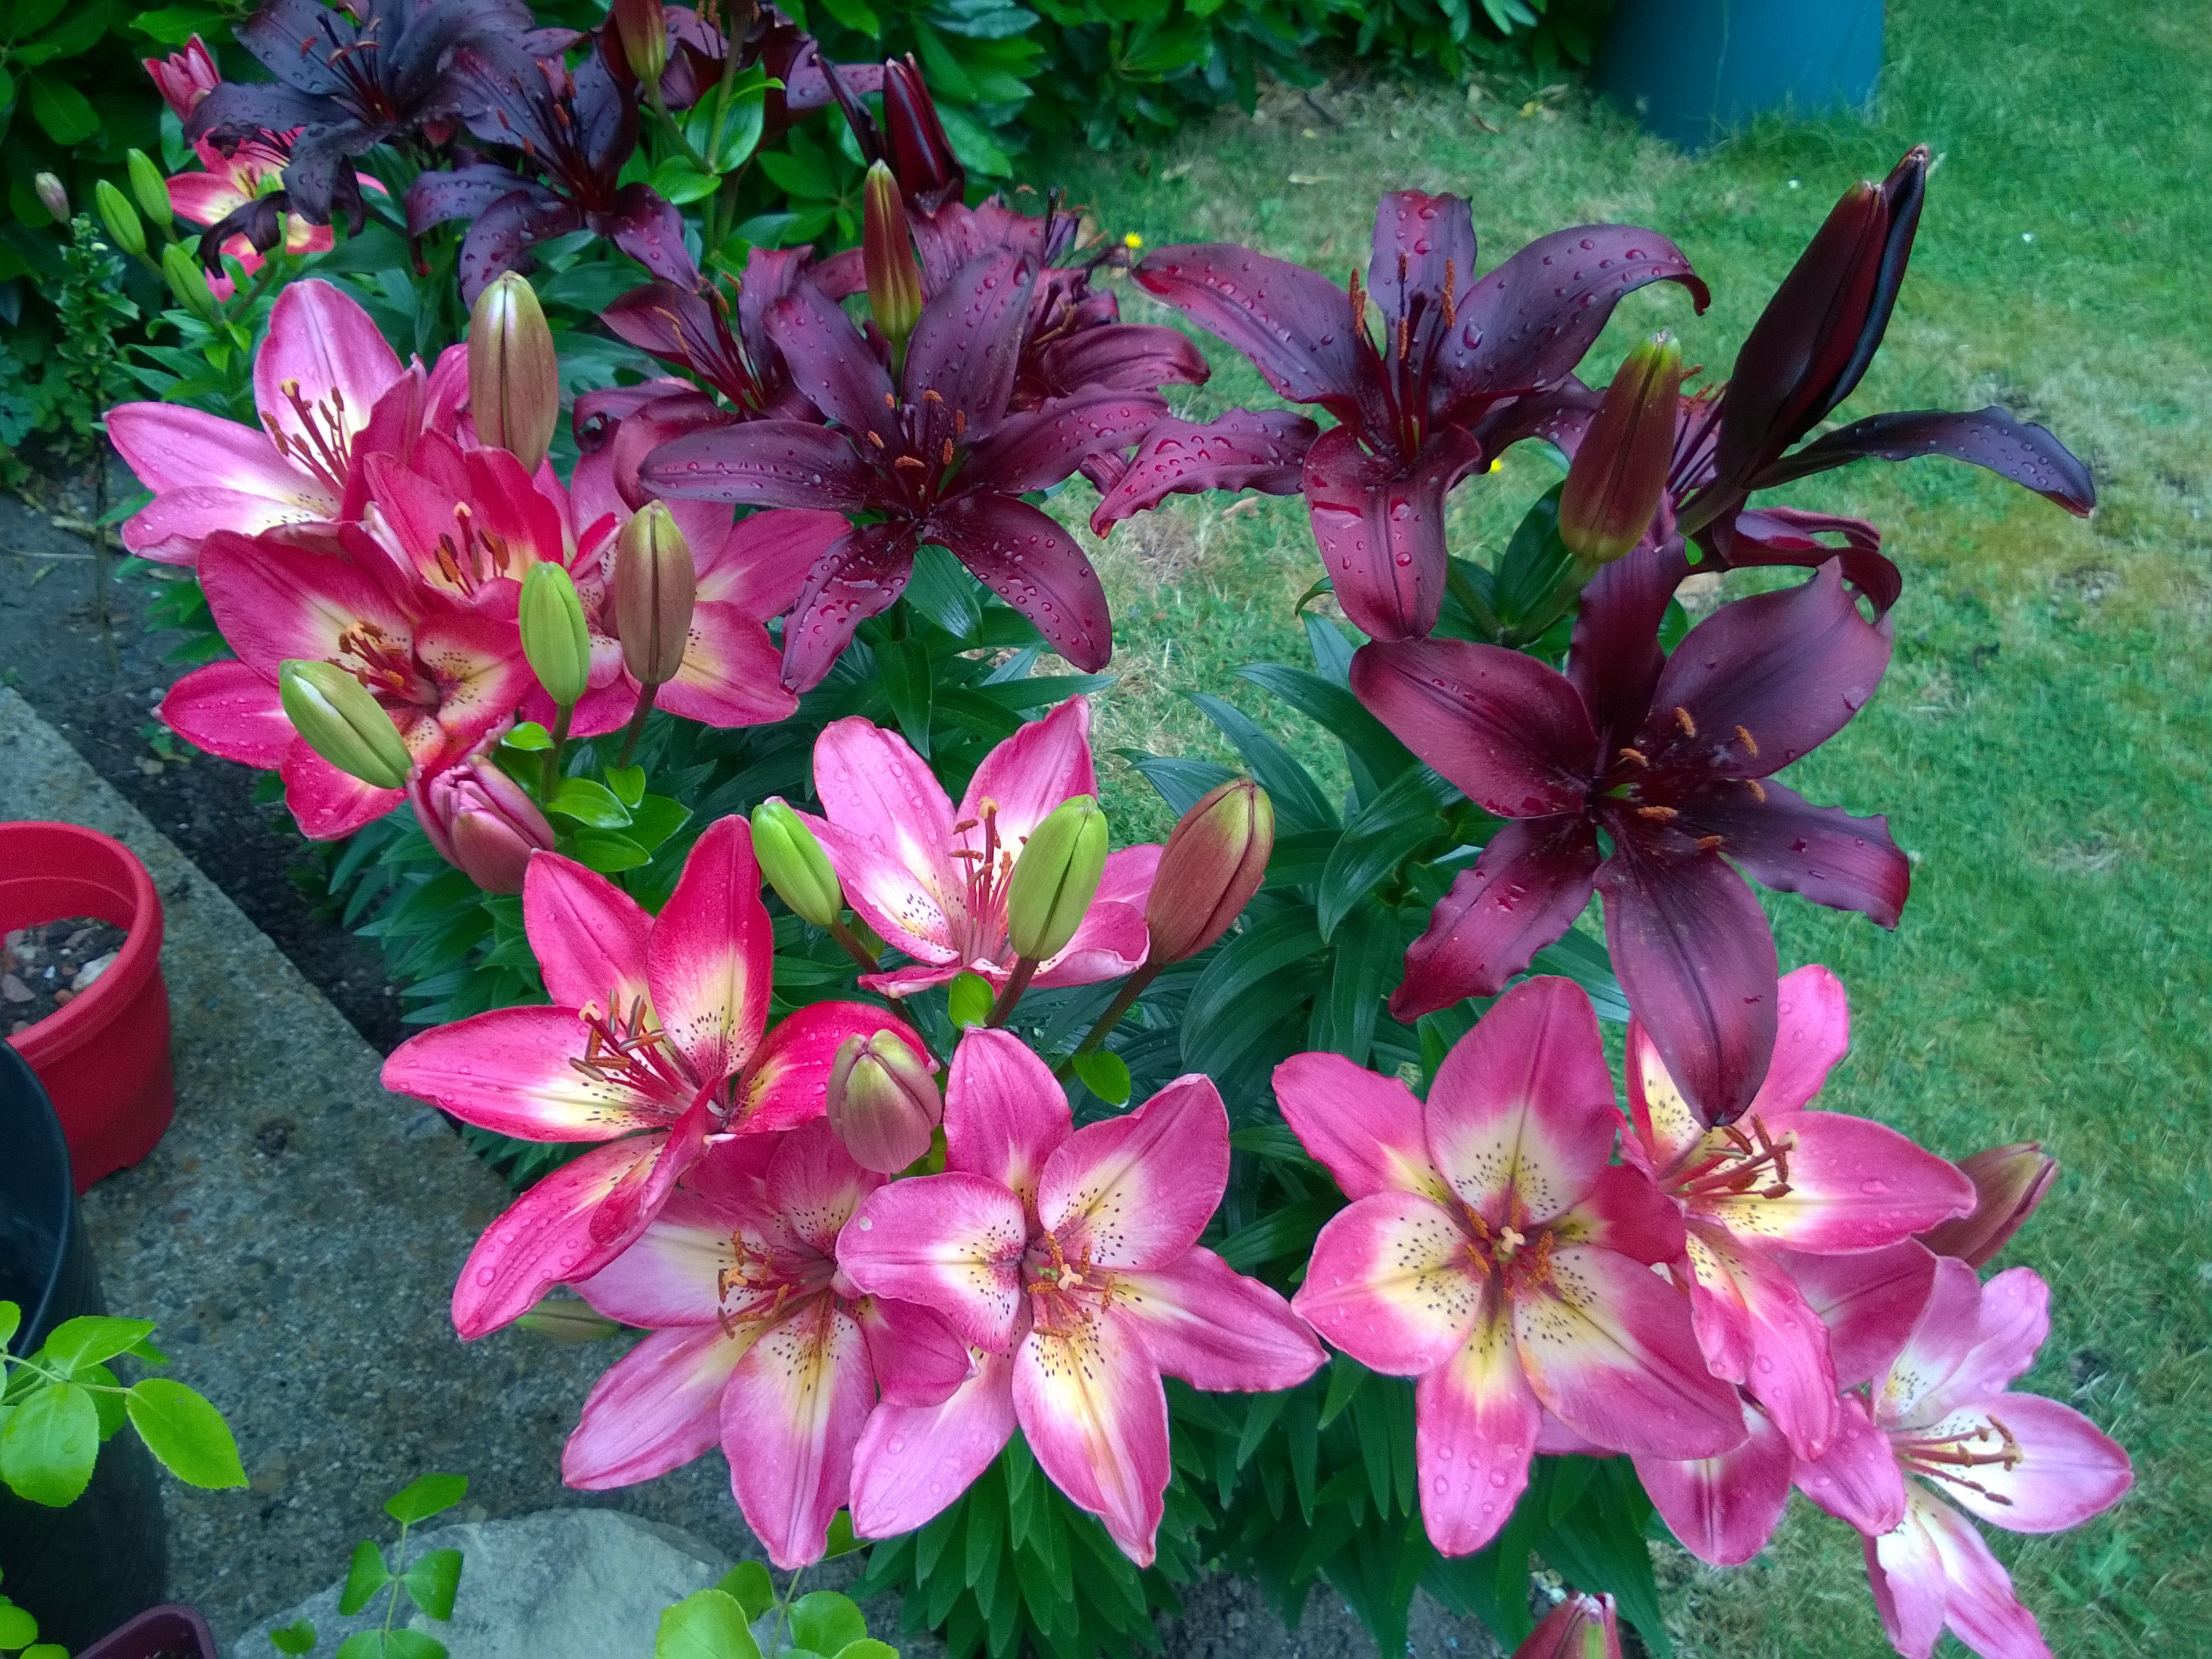 Mixed Lilies in Flower